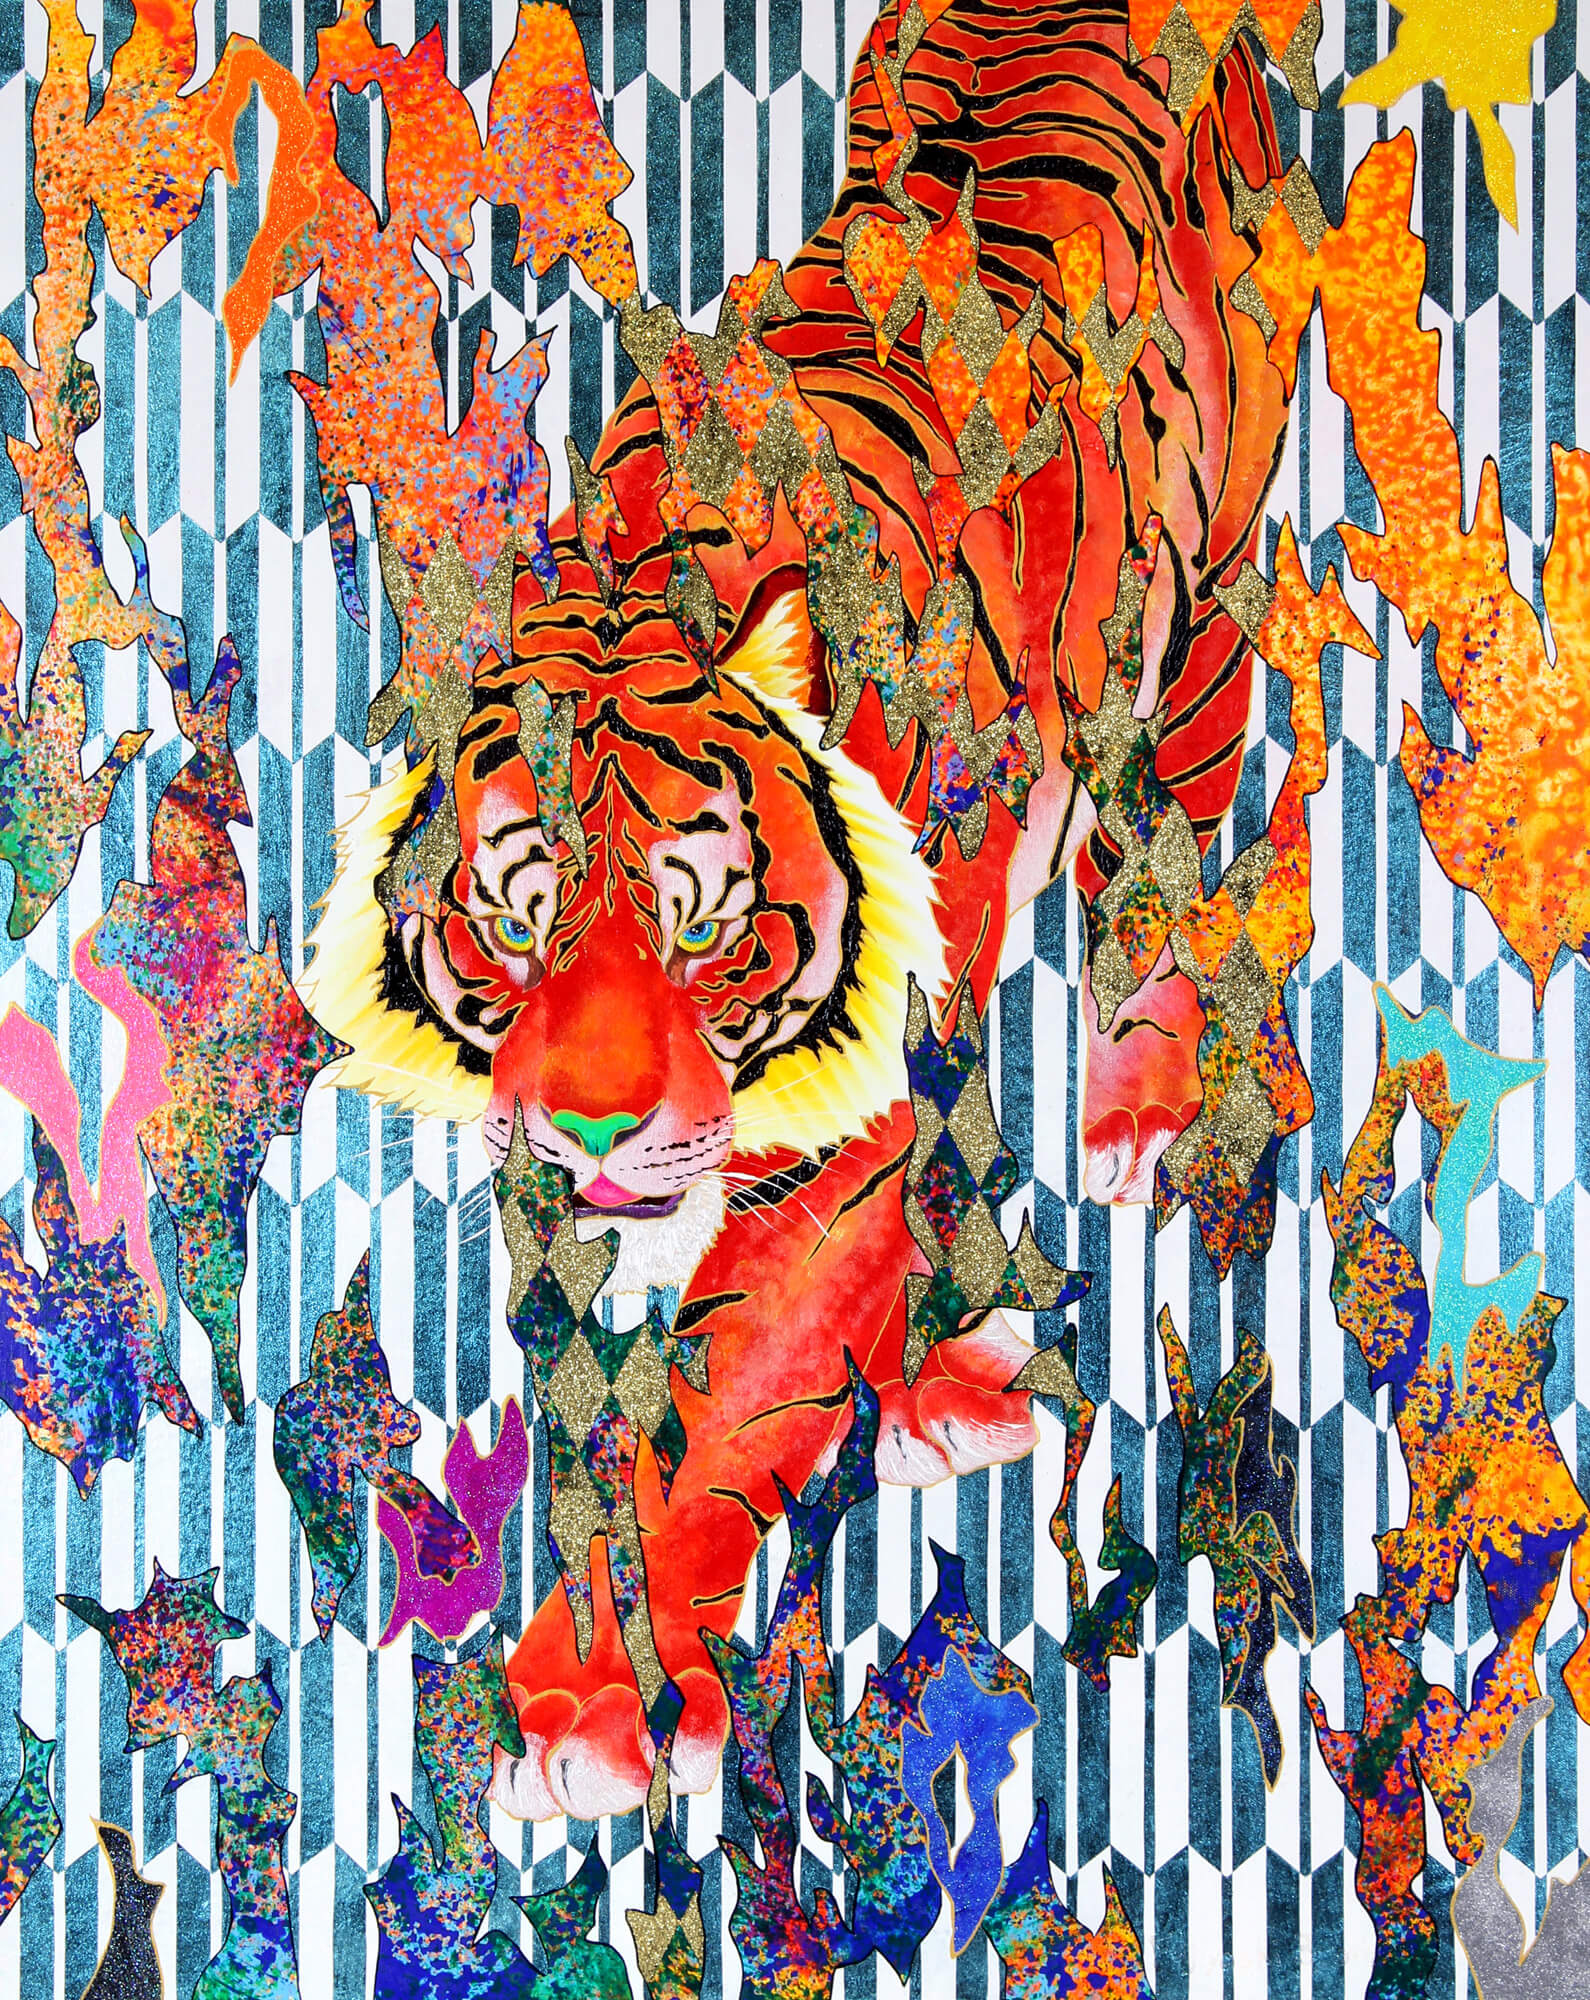 See-through:Scarlet Tiger改行 Acrylic and glitter on canvas, 910×727mm, 2019